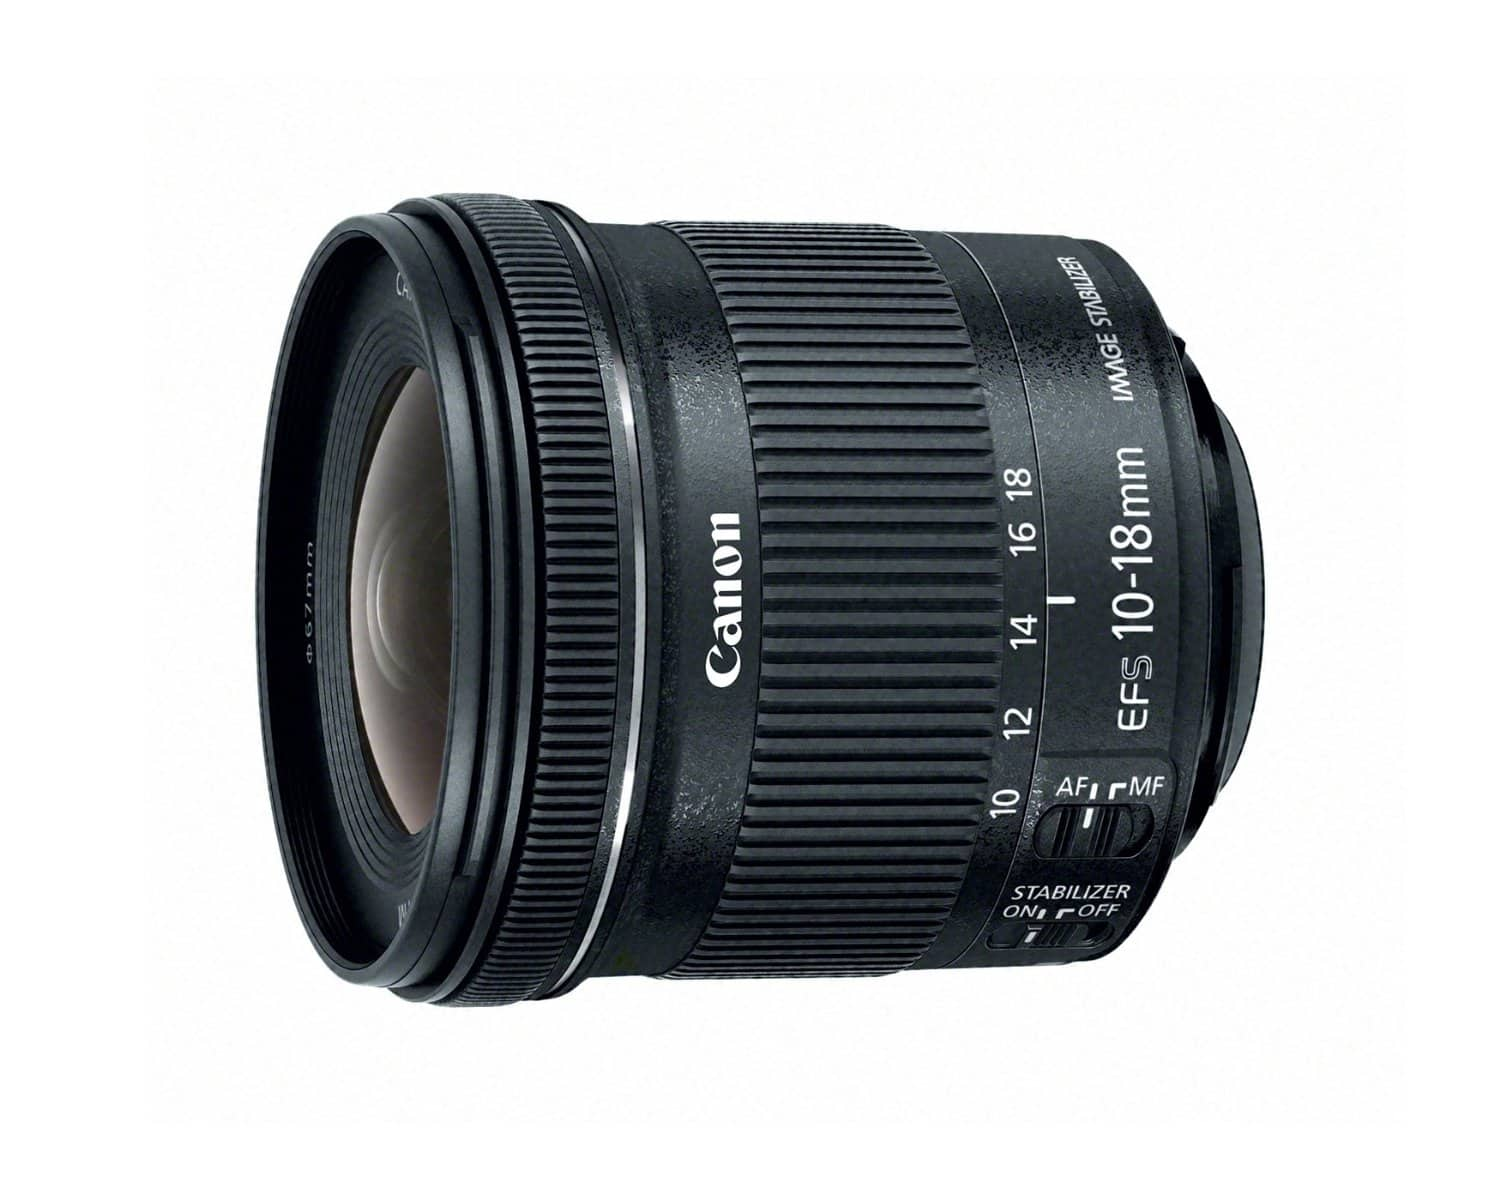 Midwest Photo Exchange - Used Canon lenses are often mixed with the new lens listings at this retailer. Used Gear from Personal Sales withtran.ml - One of the most active camera equipment buy/sell forums on the net and rich in used Canon EF lenses.